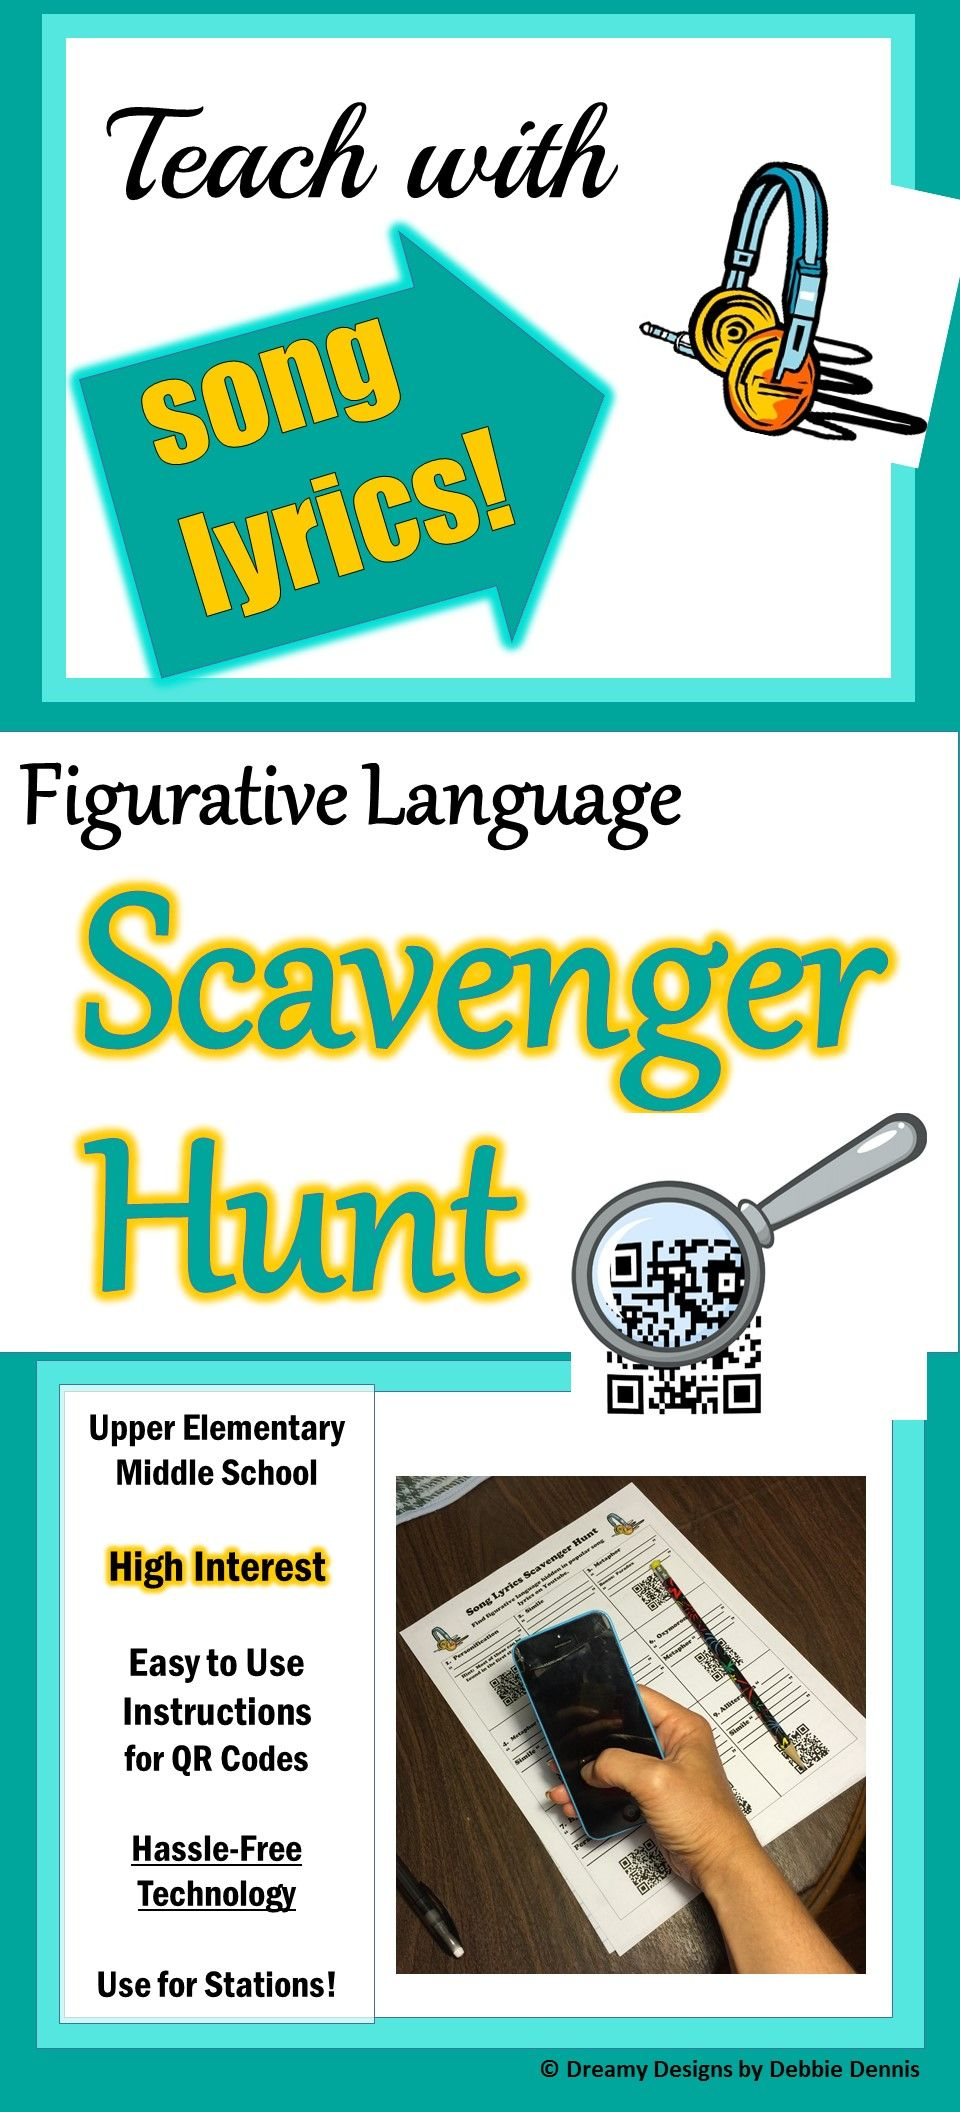 Figurative Language Scavenger Hunt W Song Lyrics Qr Codes Station